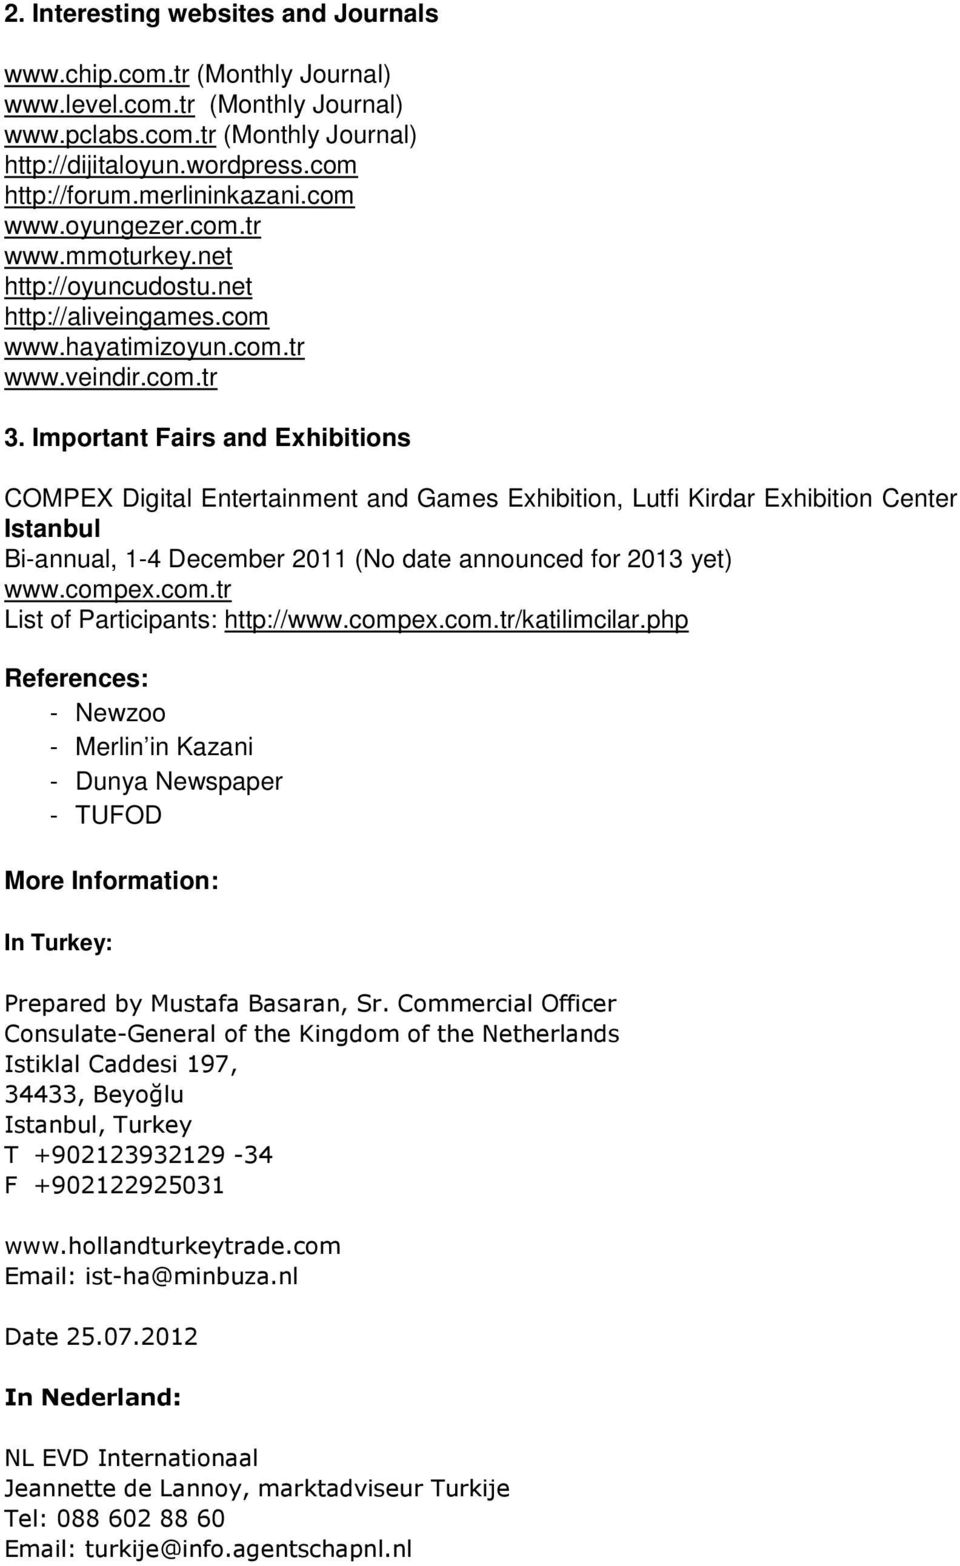 Important Fairs and Exhibitions COMPEX Digital Entertainment and Games Exhibition, Lutfi Kirdar Exhibition Center Istanbul Bi-annual, 1-4 December 2011 (No date announced for 2013 yet) www.comp